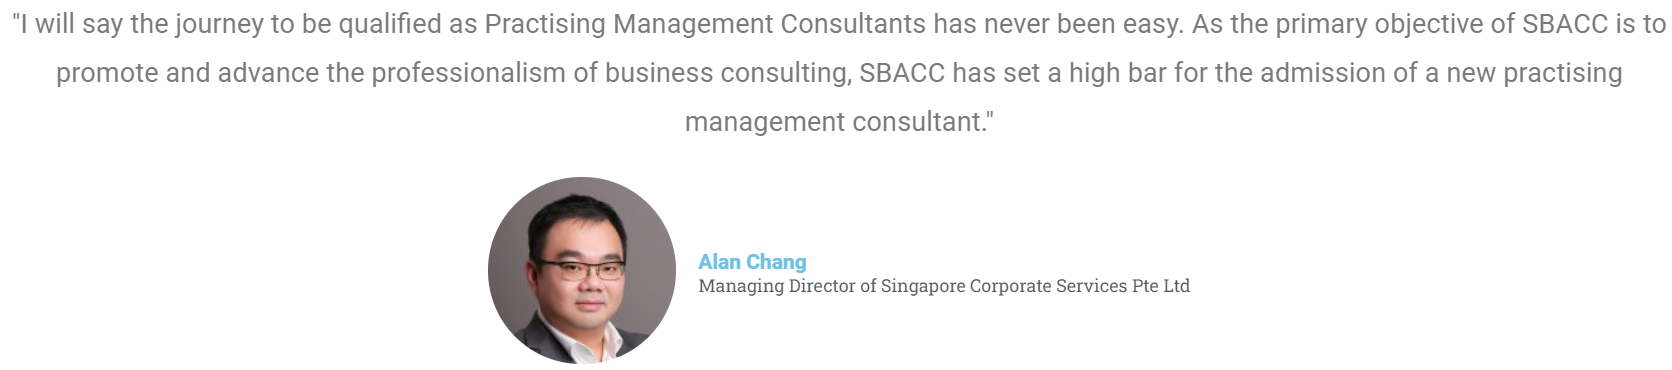 Alan Chang quote